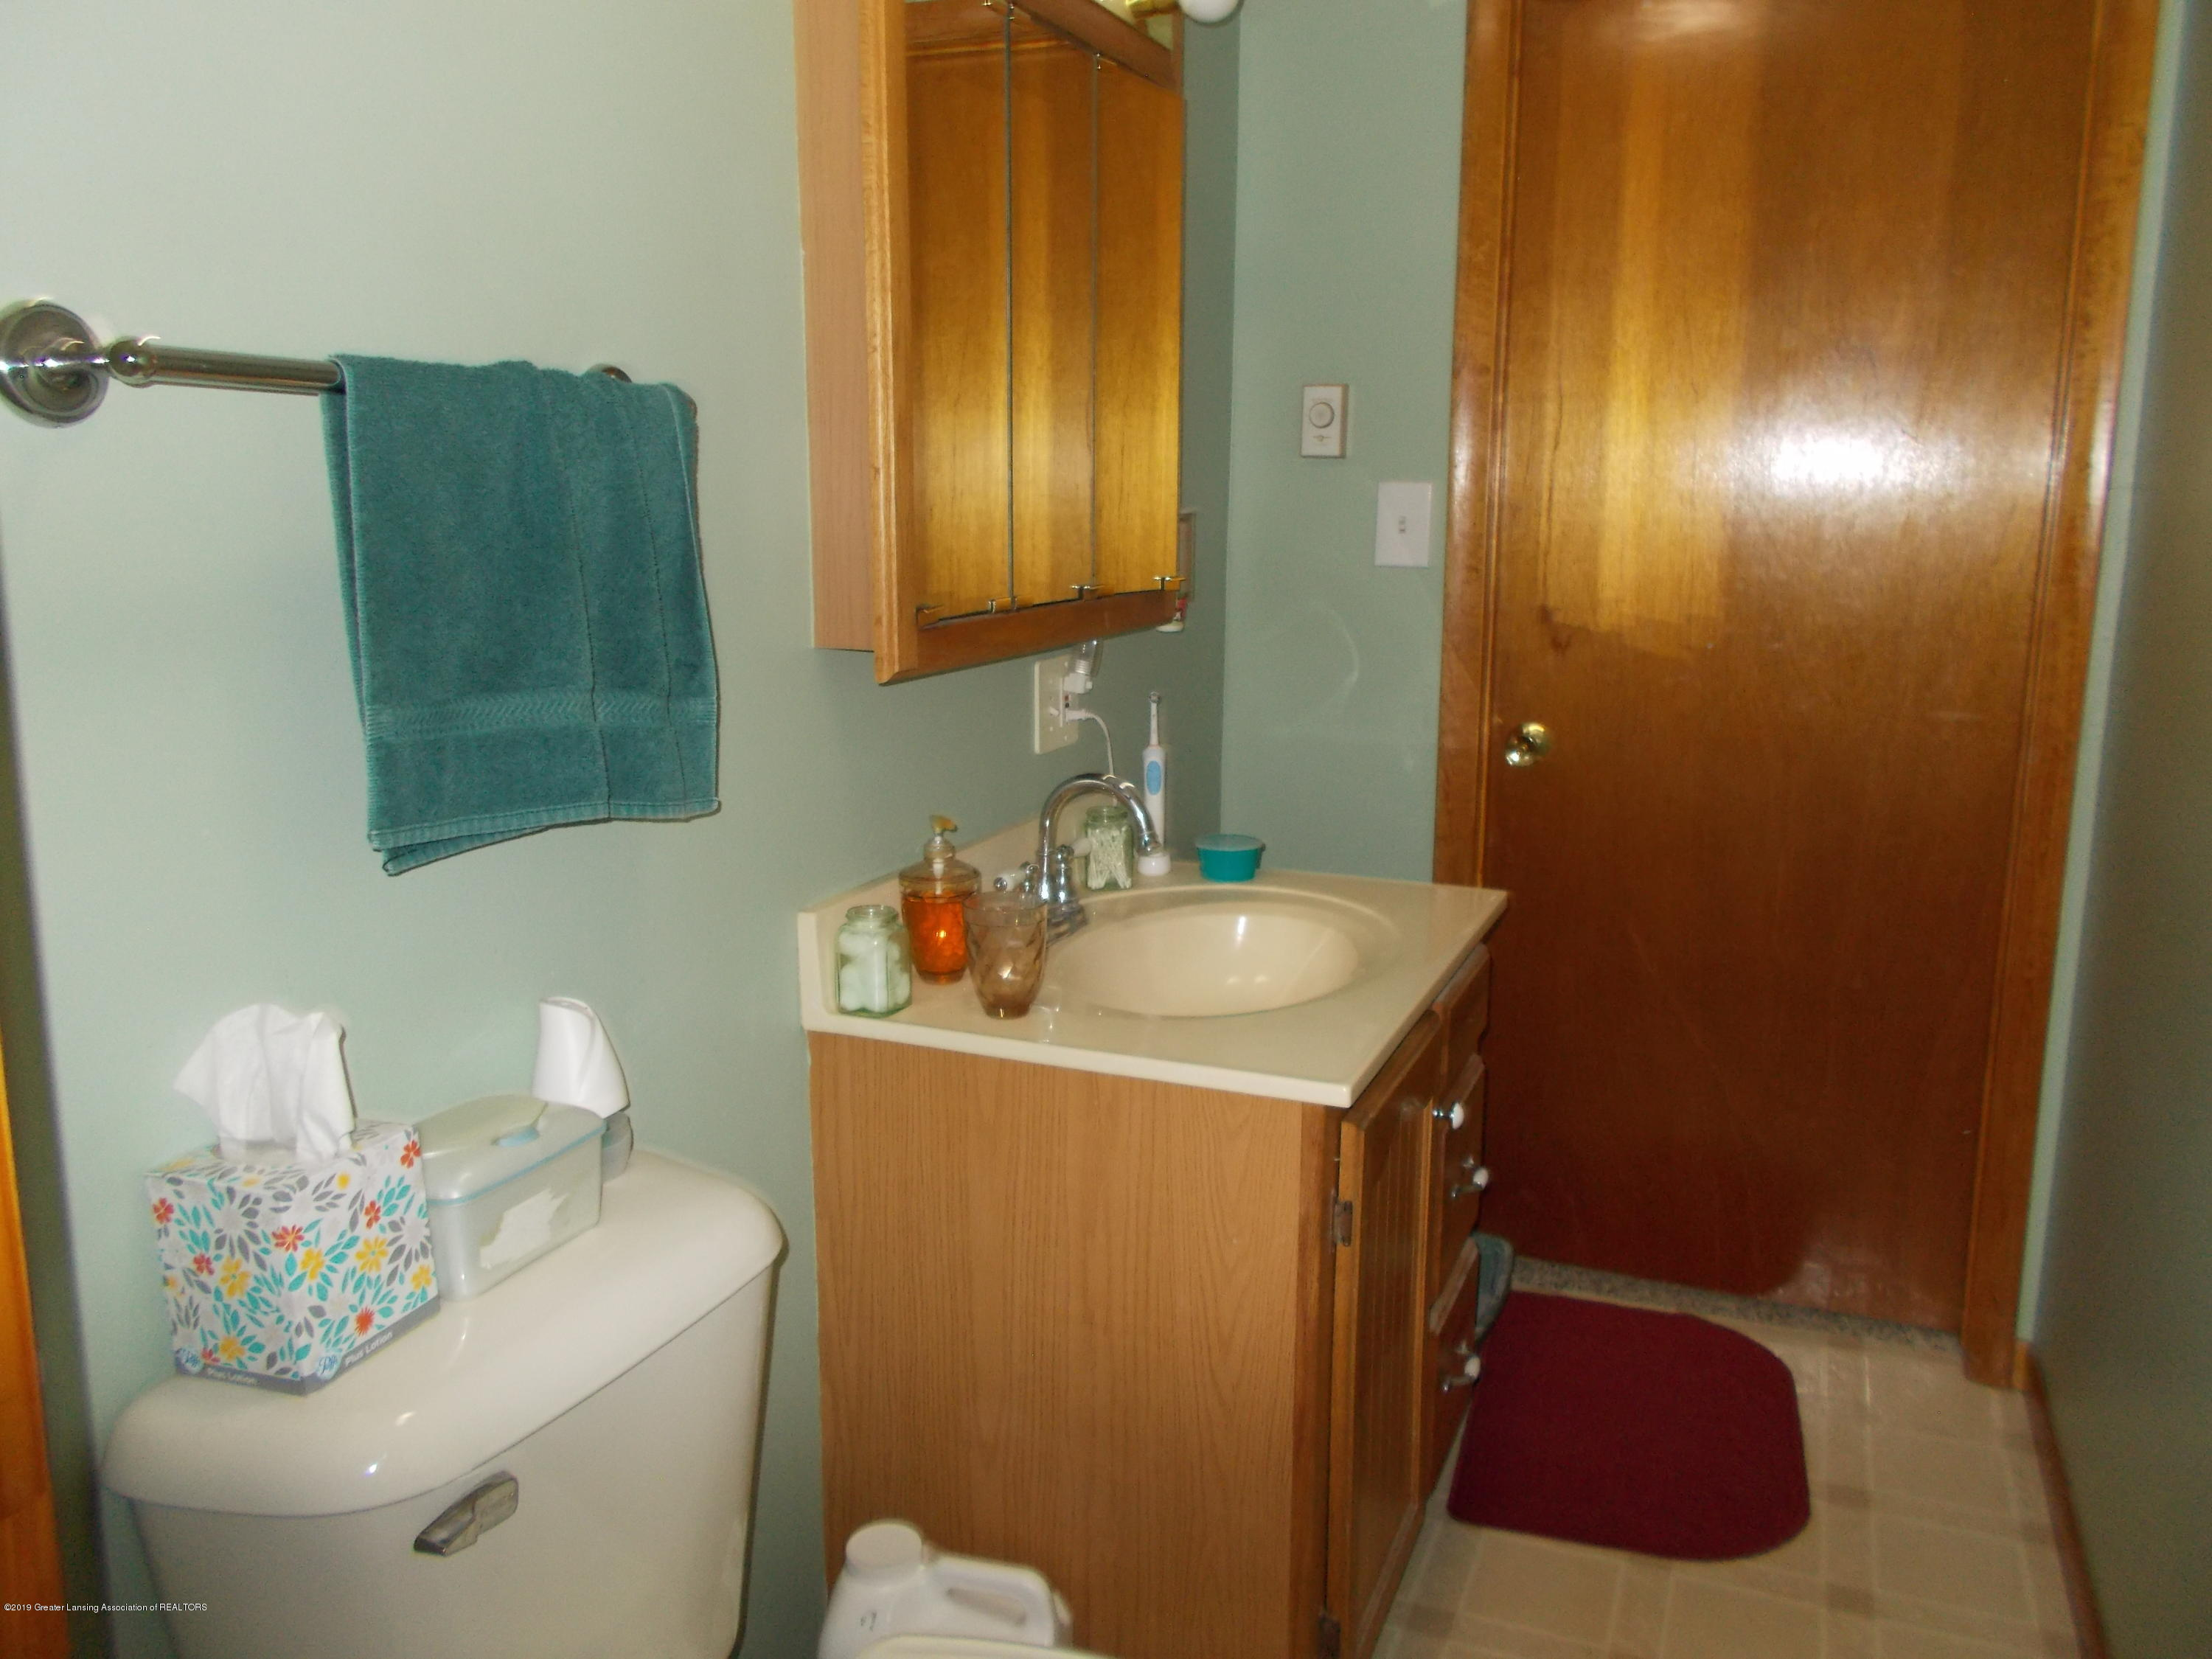 8625 E Bellevue Hwy - 1/2 Bath - 18